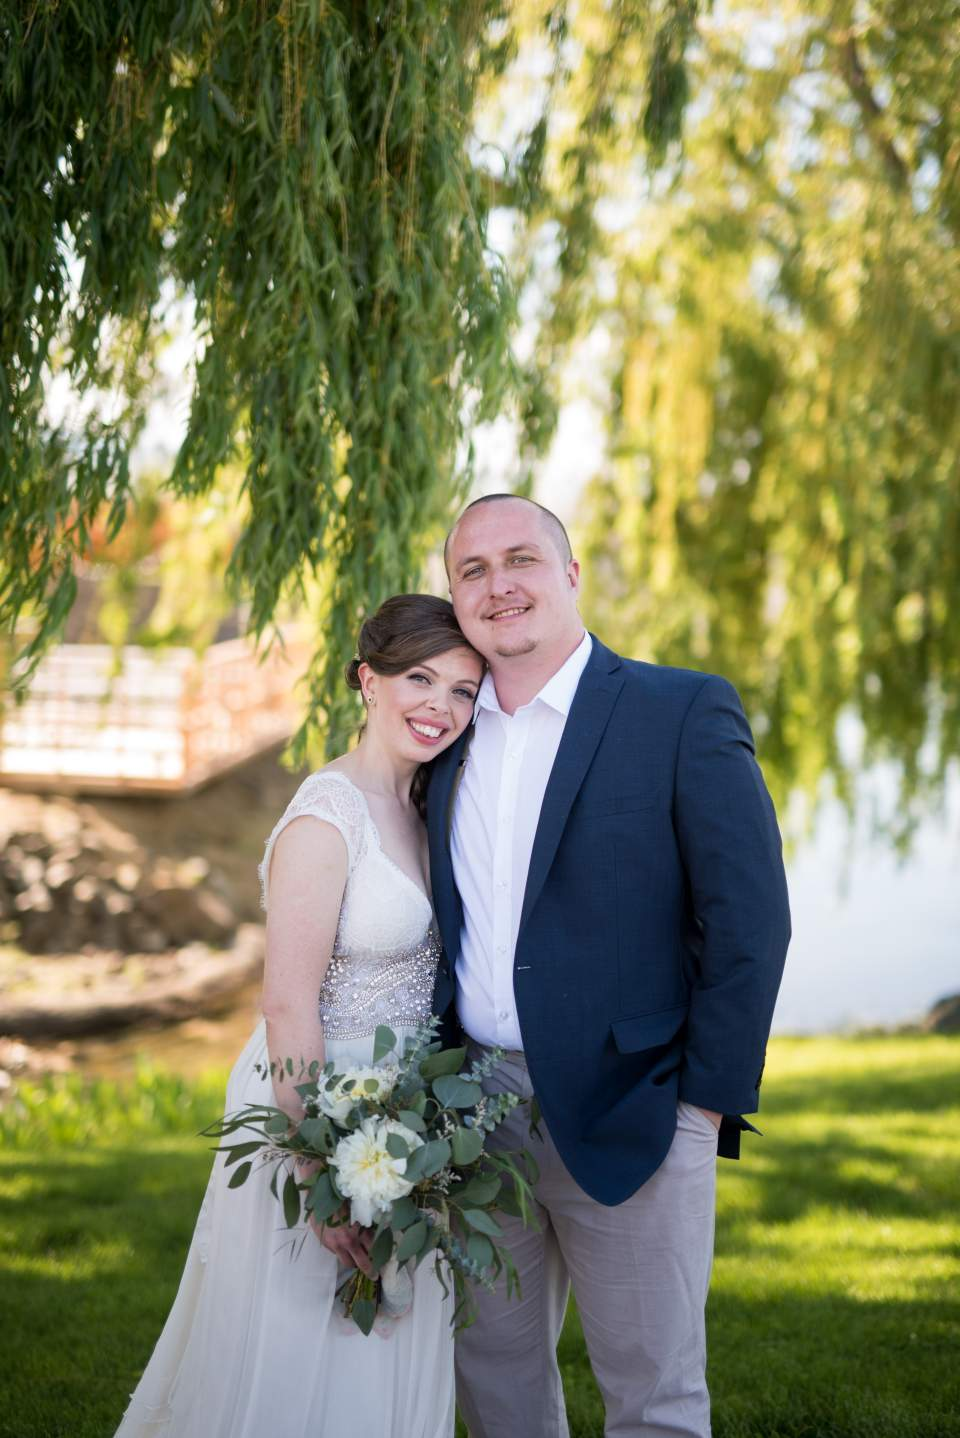 photos of the bride and groom under a willow tree